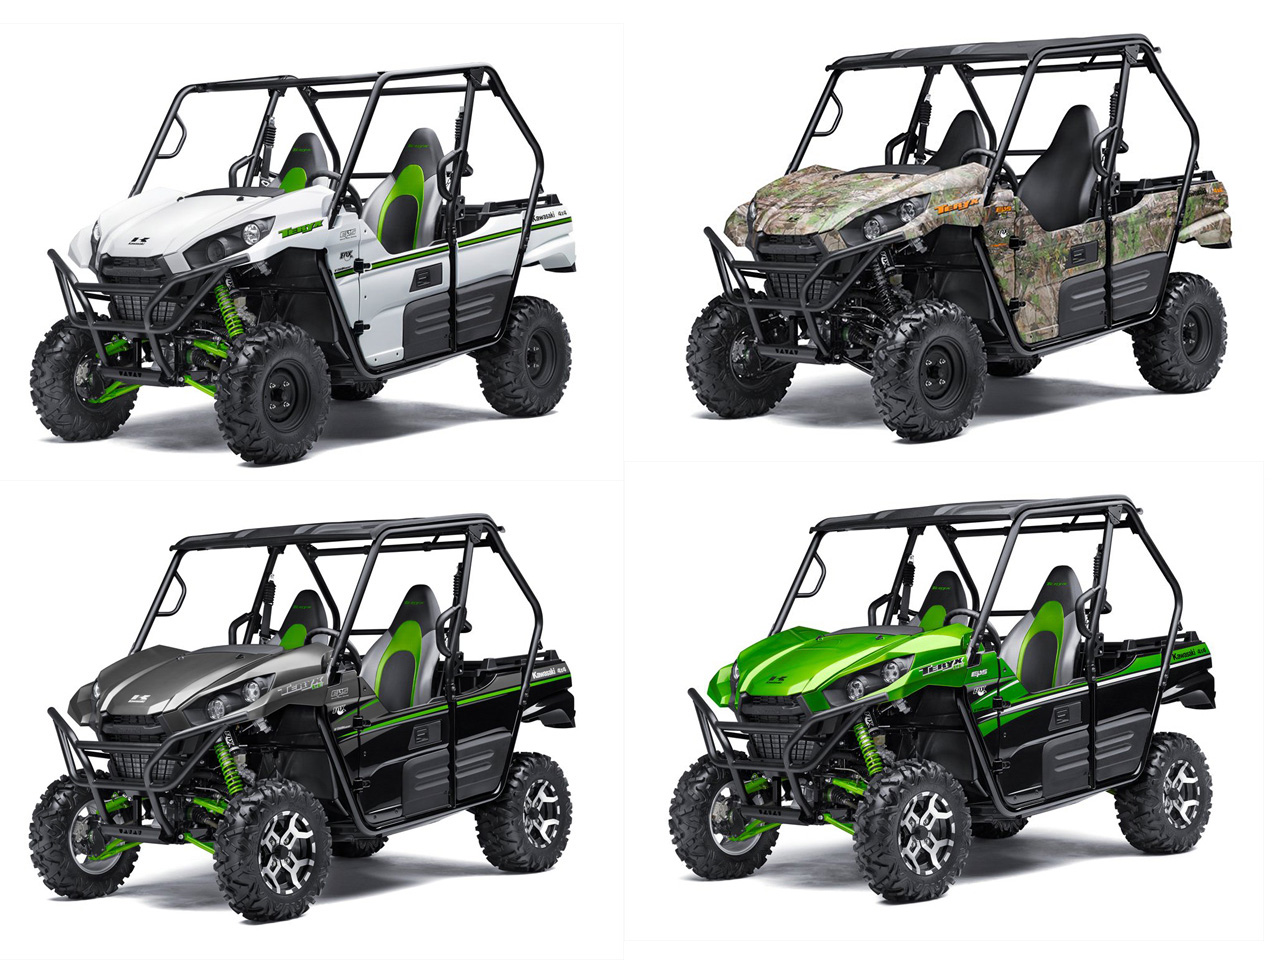 Kawasaki Teryx News And Reviews | Top Speed